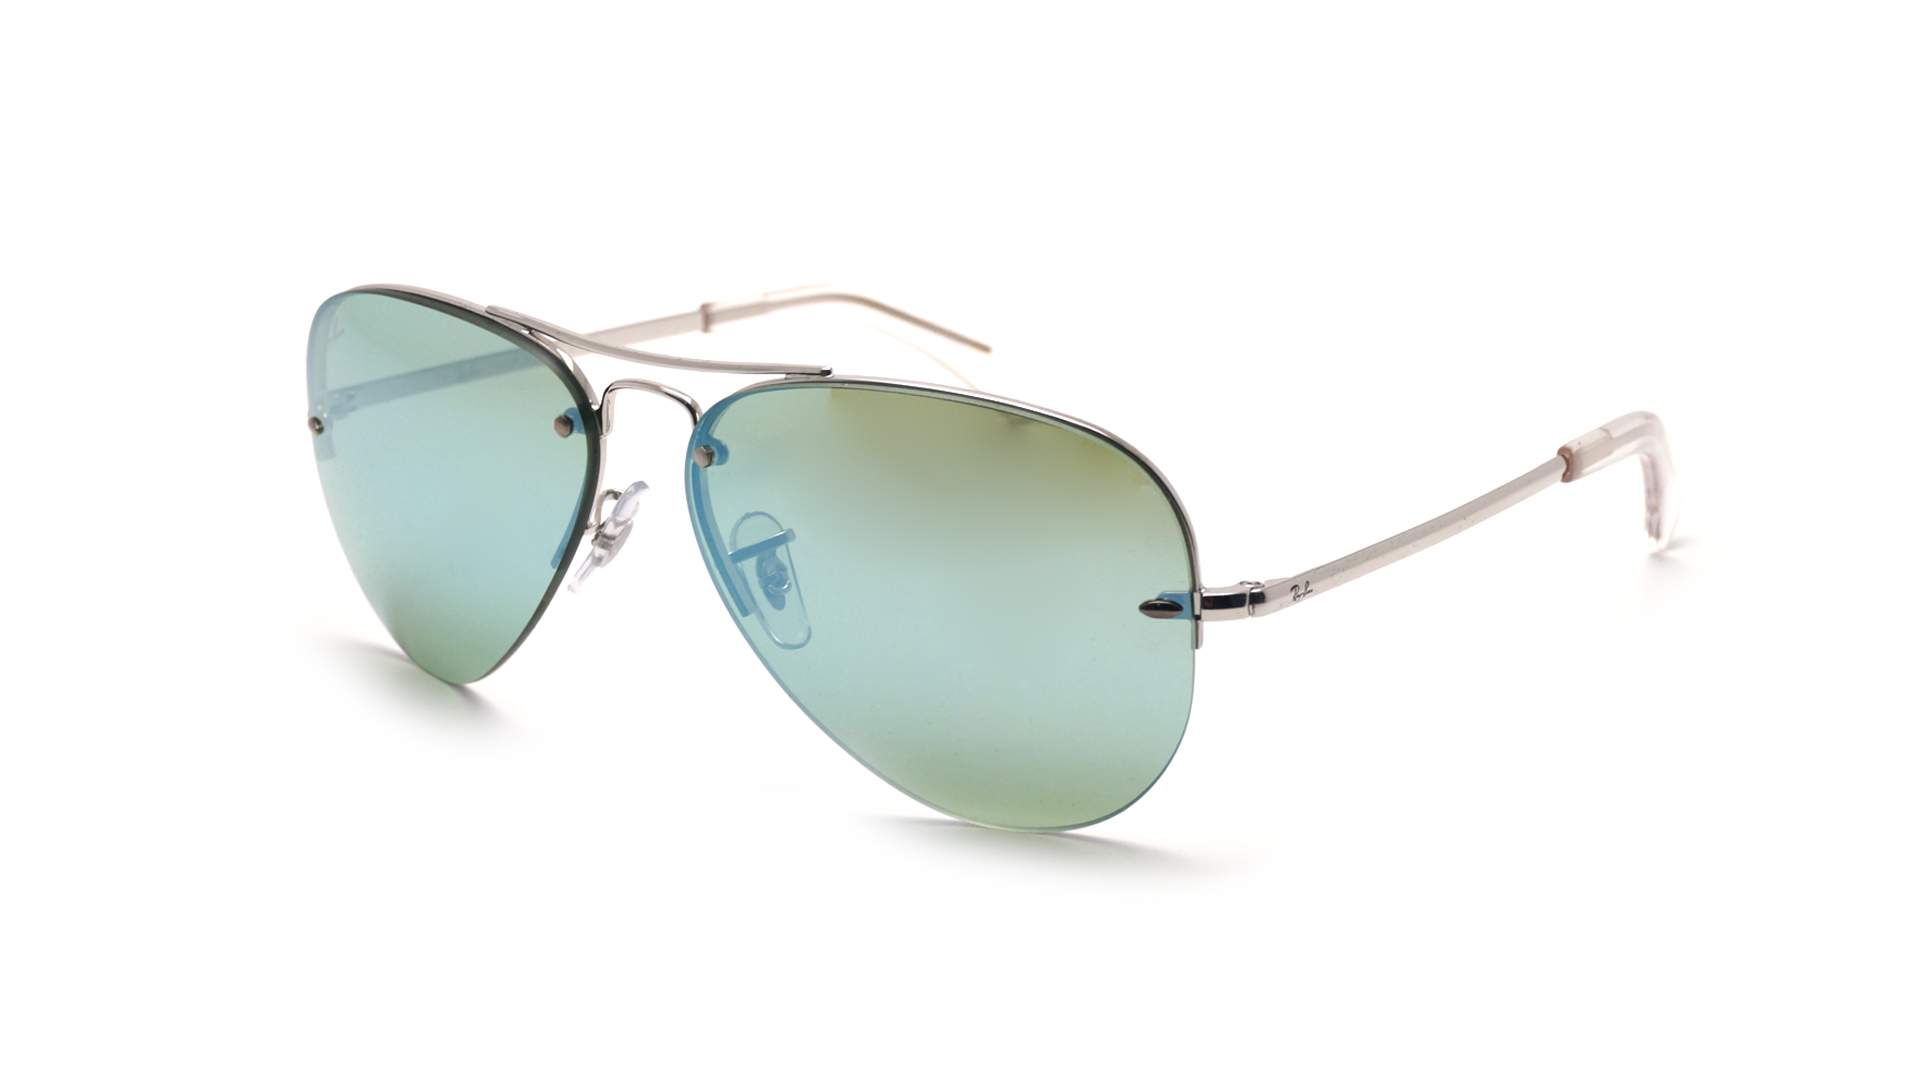 b7adc21d6c8 Sunglasses Ray-Ban RB3449 9043 30 59-14 Silver Large Mirror